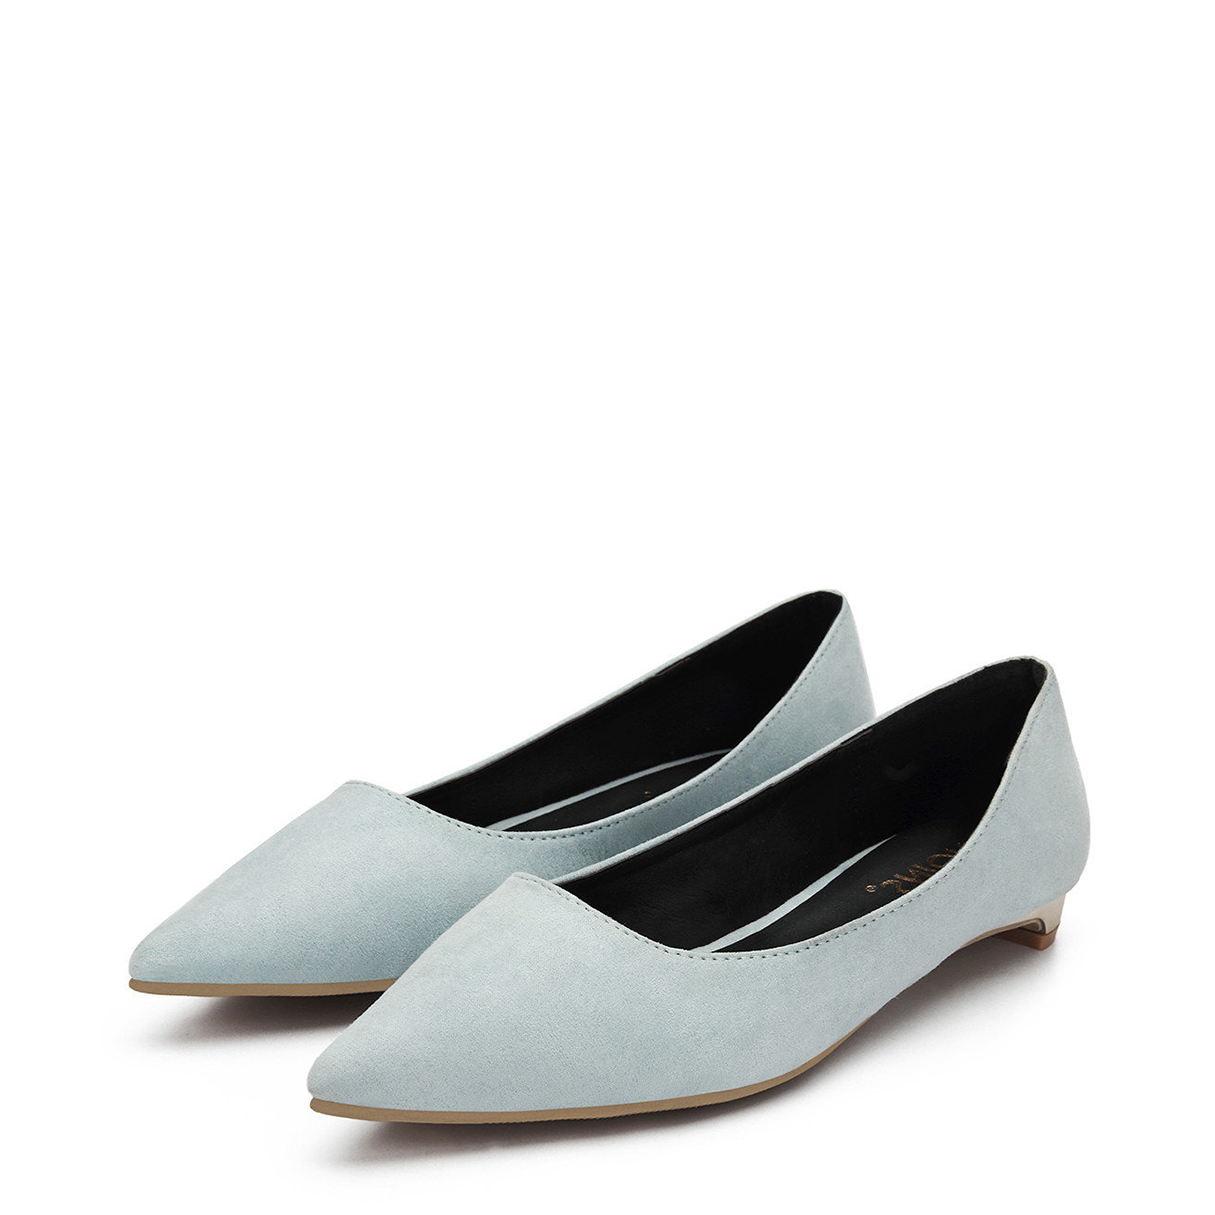 Light Blue Suede Pointed Toe Flat Shoes